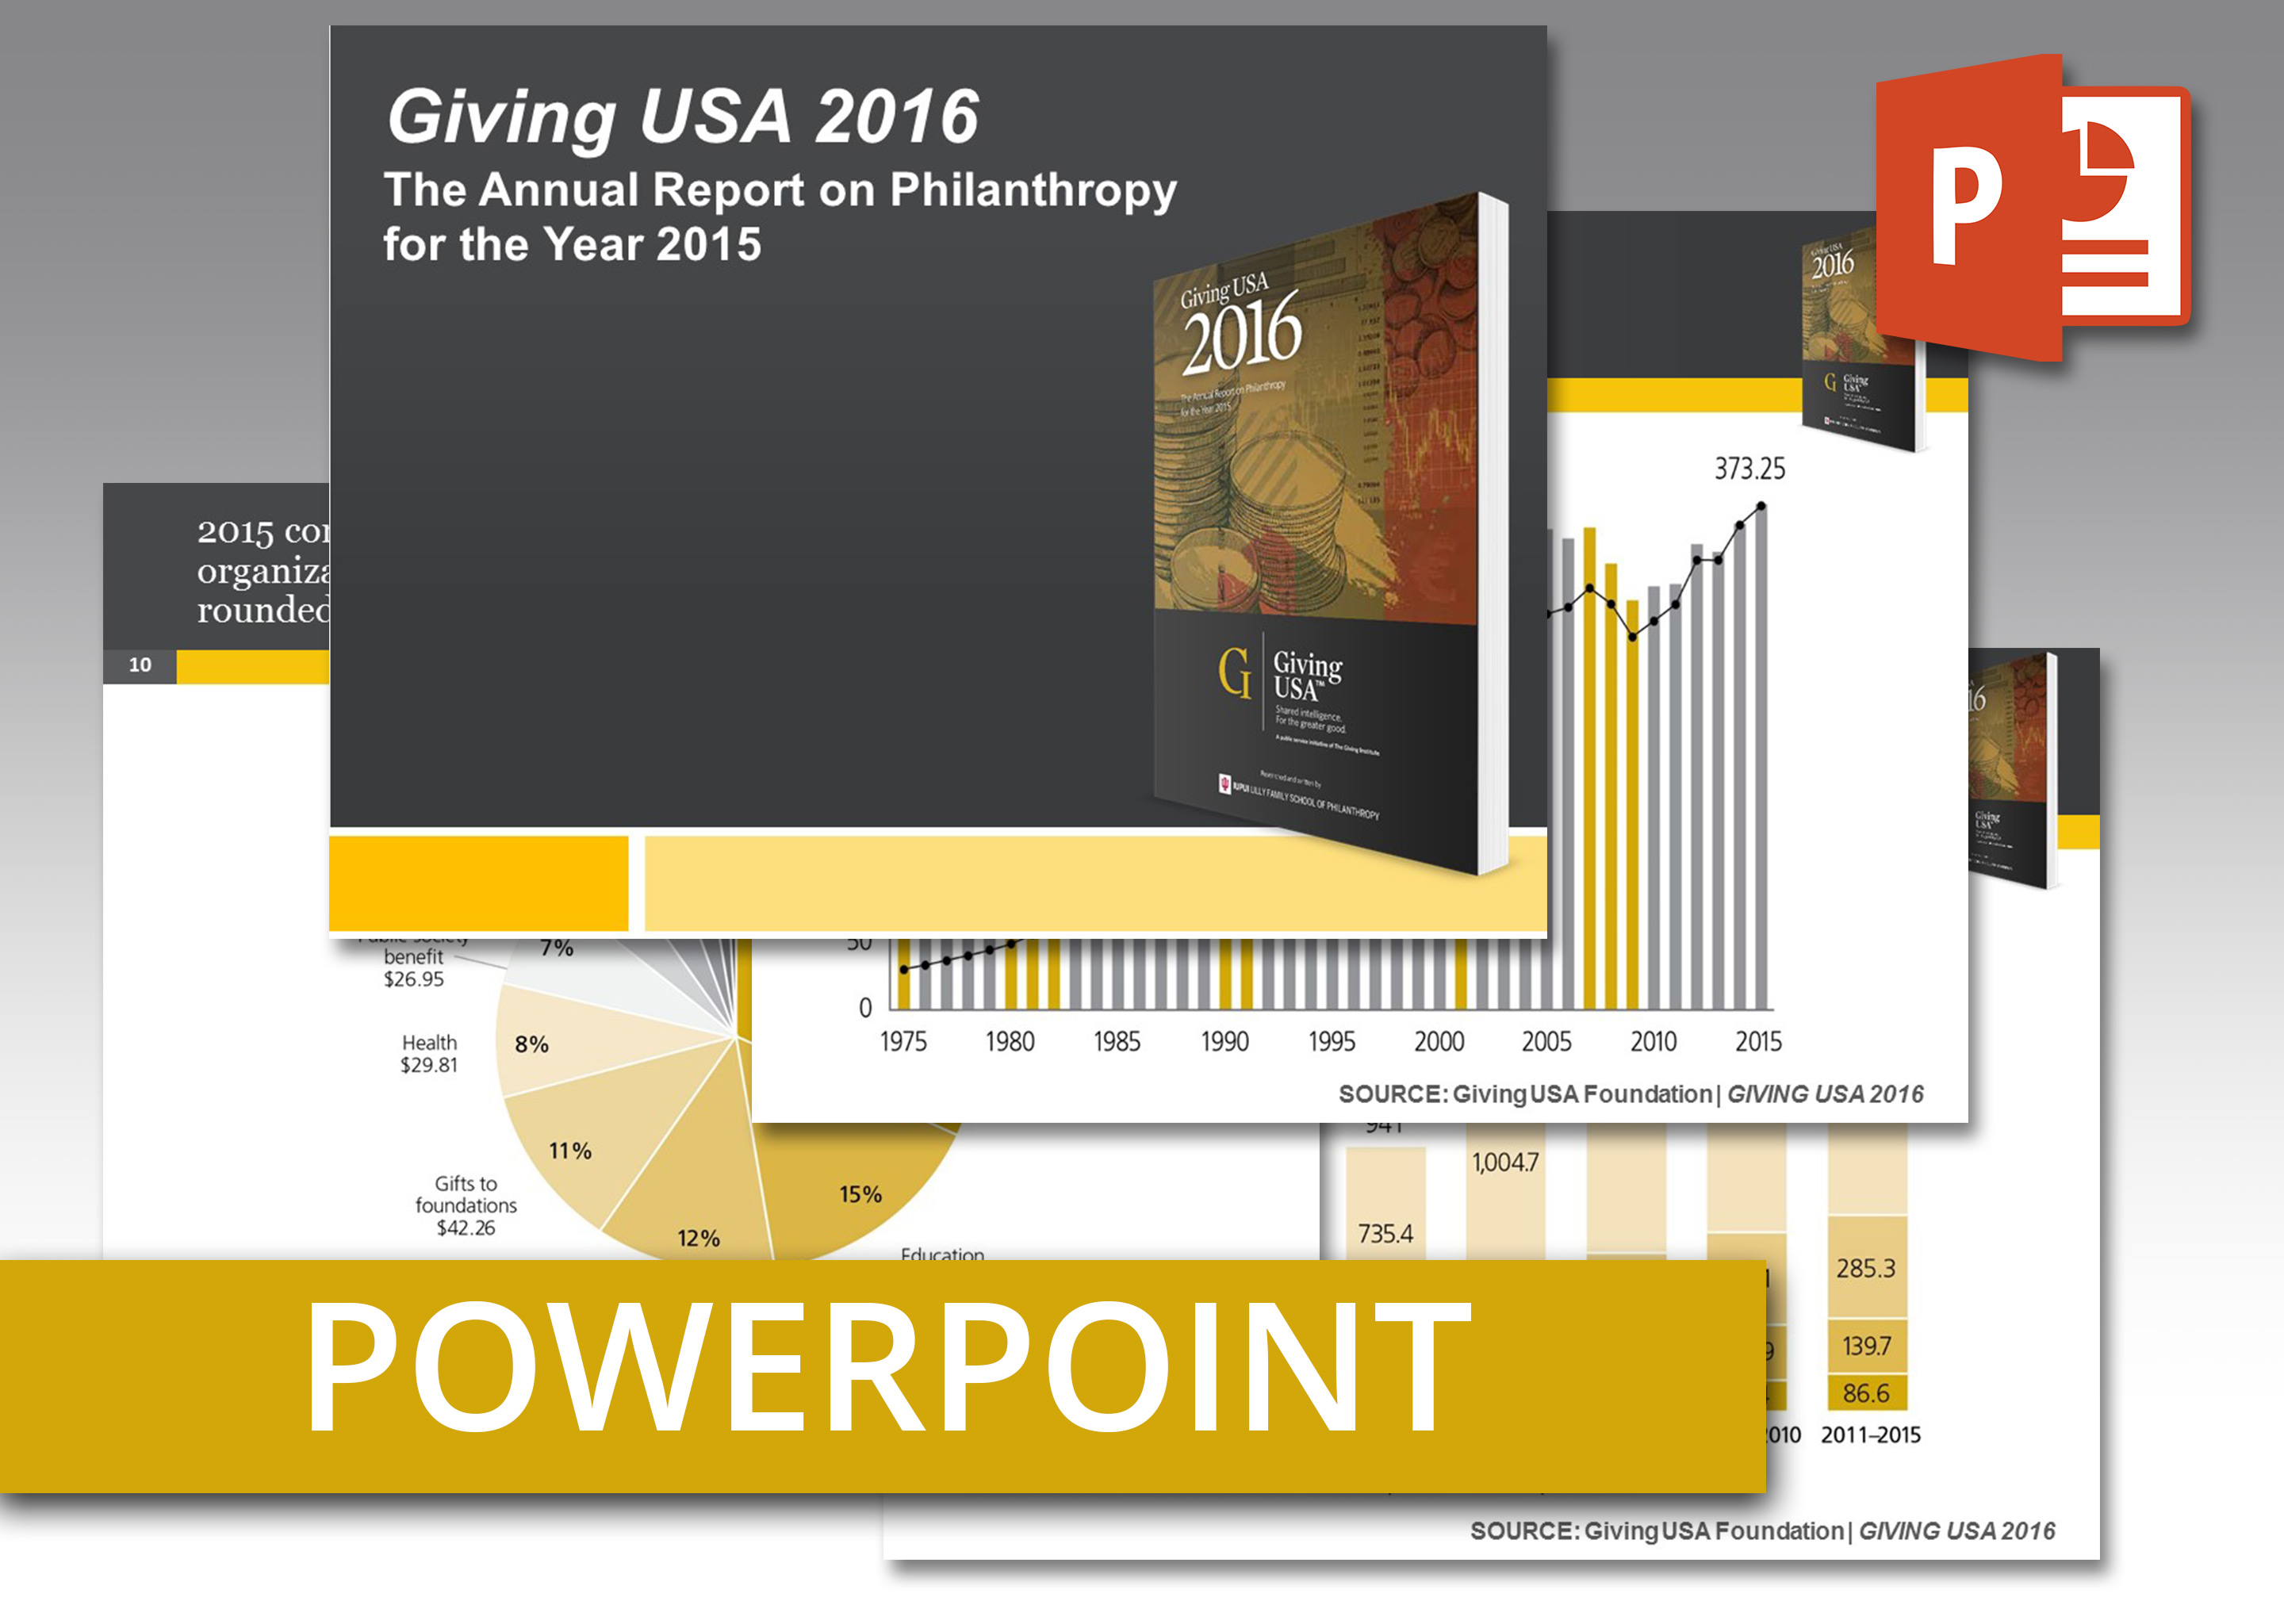 Usdgus  Wonderful Giving Usa  Powerpoint An Easytouse Presentation Of Report  With Luxury Giving Usa  Powerpoint An Easytouse Presentation Of Report Findings Including Talking Points With Lovely Mla Format Powerpoint Also Powerpoint How To In Addition Church Powerpoint Backgrounds And Powerpoint Viewer  As Well As The Cognitive Style Of Powerpoint Additionally Powerpoint Presentation Topics From Givingusaorg With Usdgus  Luxury Giving Usa  Powerpoint An Easytouse Presentation Of Report  With Lovely Giving Usa  Powerpoint An Easytouse Presentation Of Report Findings Including Talking Points And Wonderful Mla Format Powerpoint Also Powerpoint How To In Addition Church Powerpoint Backgrounds From Givingusaorg